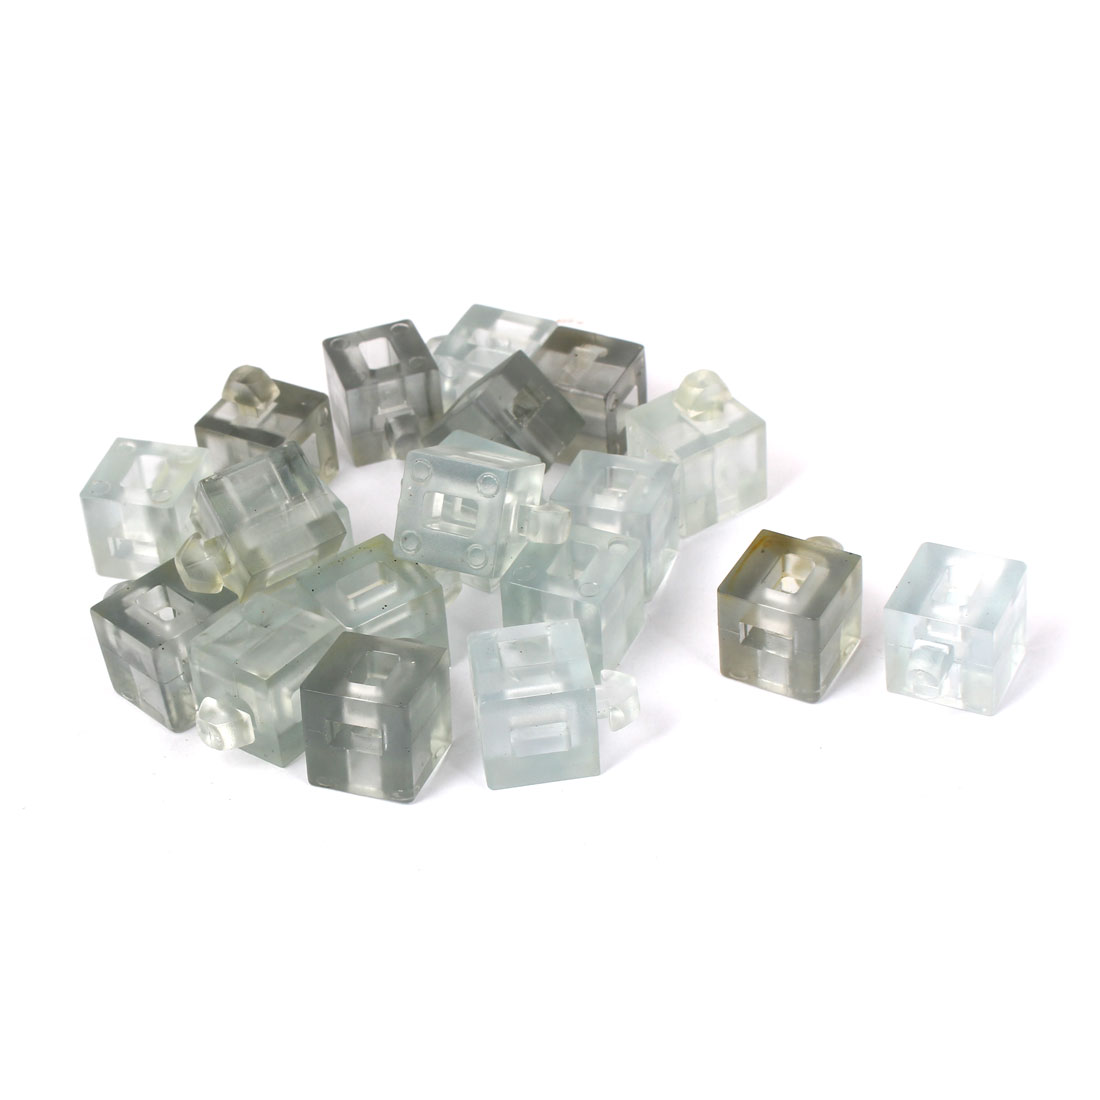 Aluminum Profile Glass Nylon Spacer Block Fastener Connector Clear 20pcs